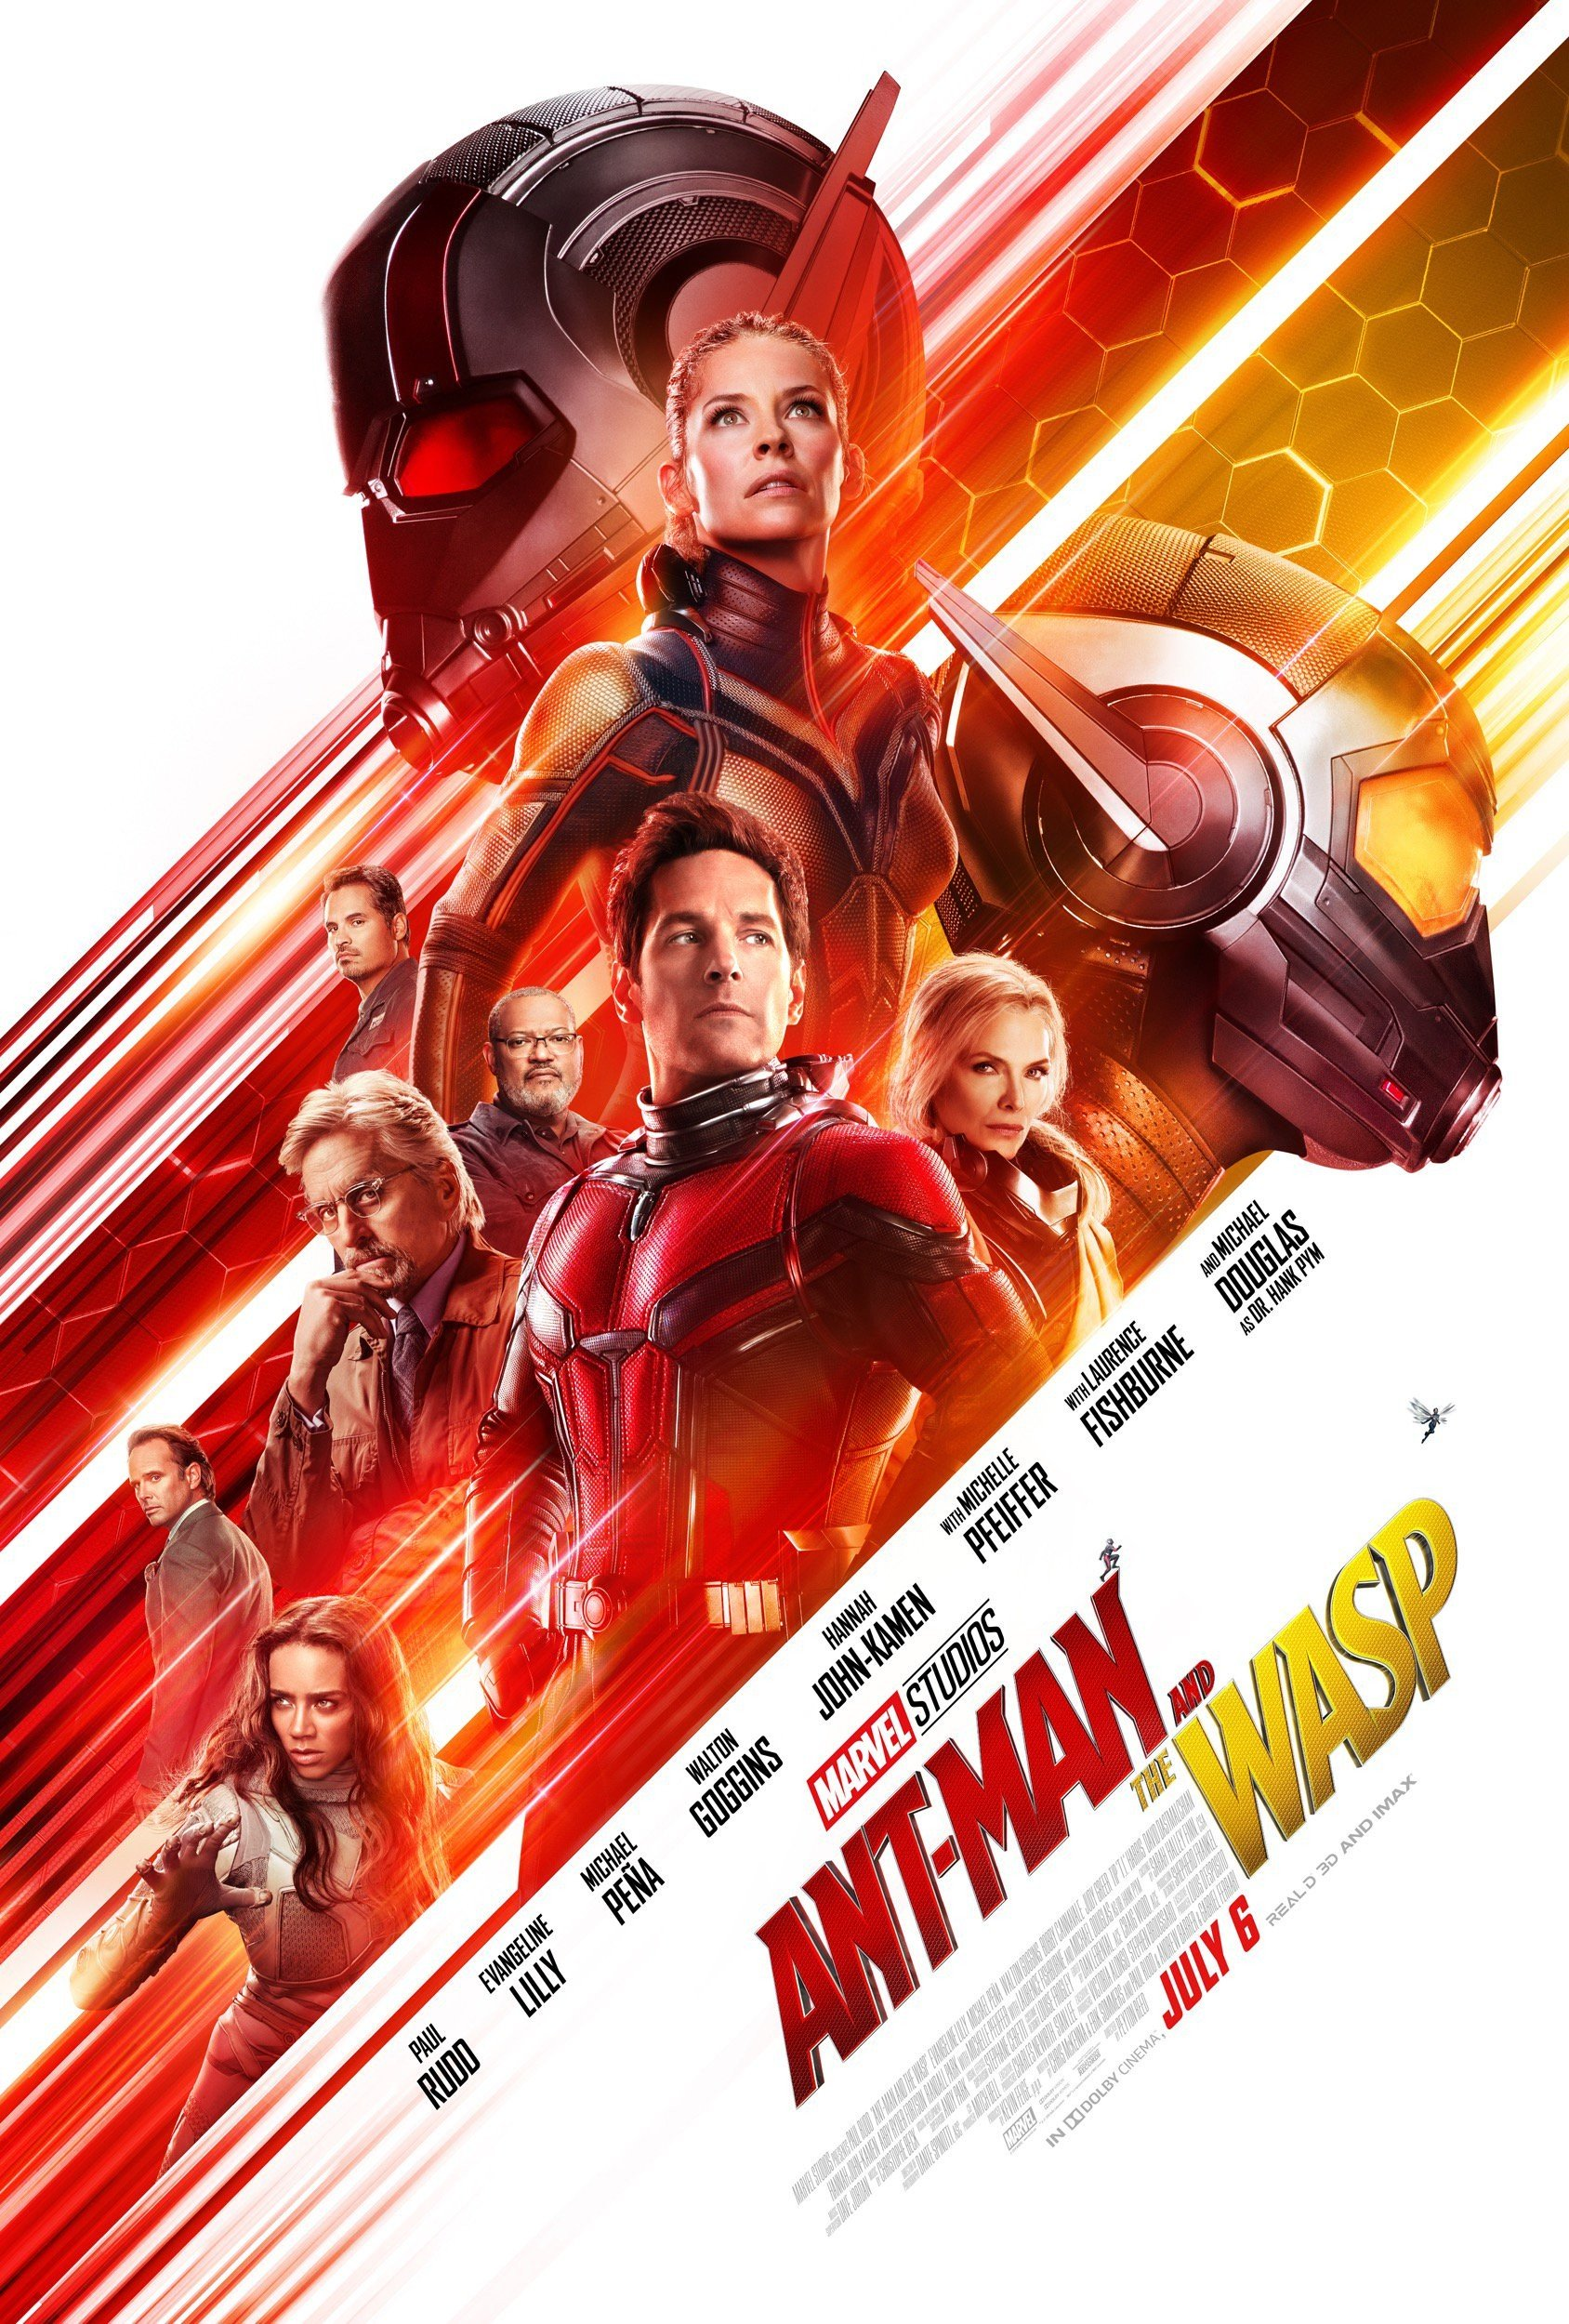 Ant-Man and the Wasp 蚁人与黄蜂女